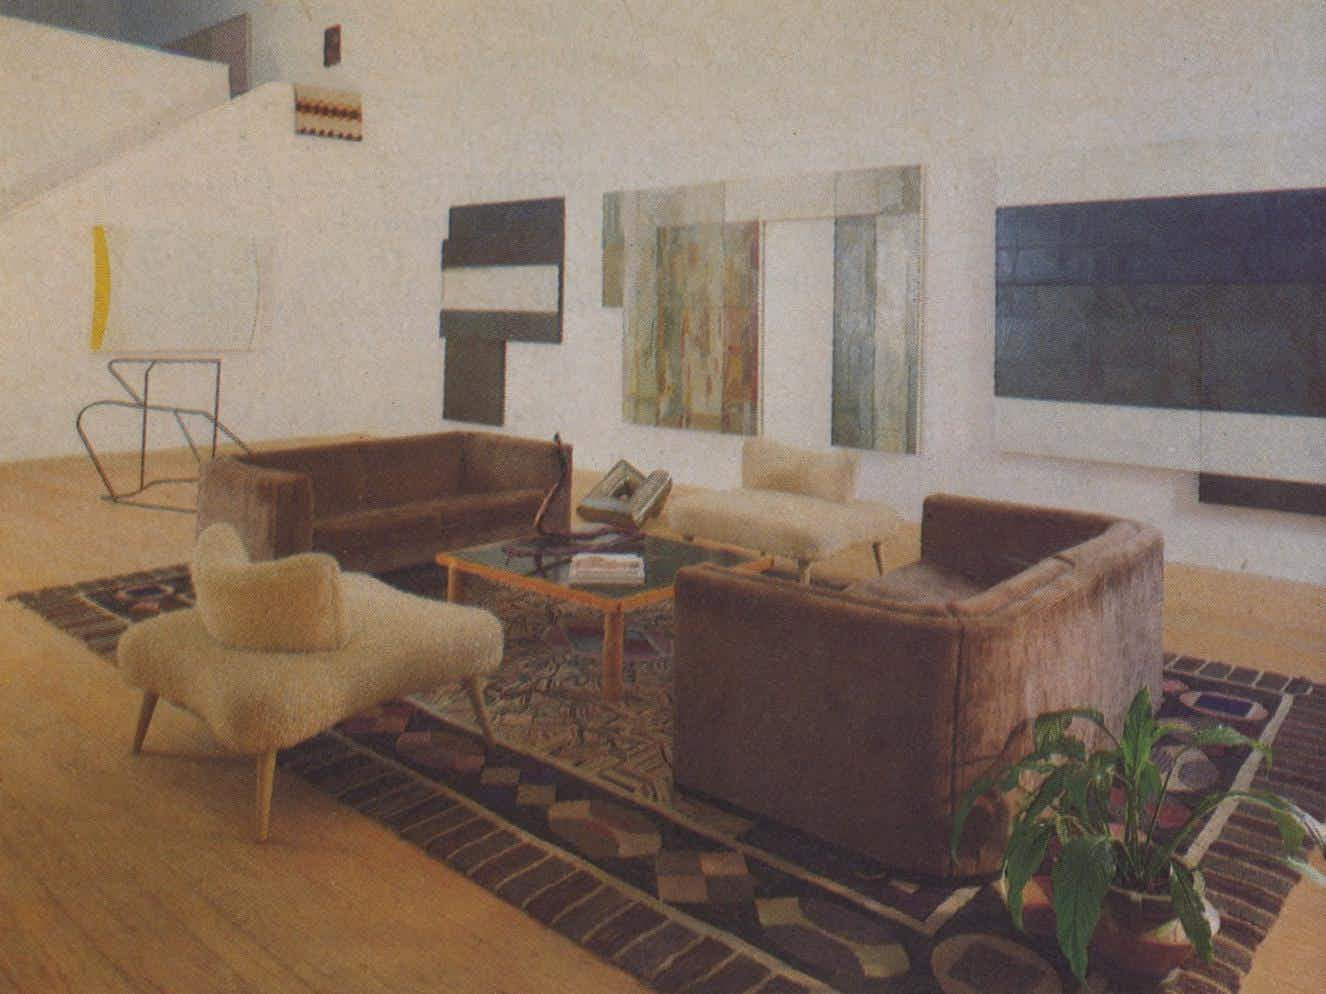 "The simple furnishings of the living room are set off by a large 19th-century French Canadian hooked rug. The new three-piece oil painting by David Novros has been hung to dry and is for sale. On the floor are metal sculptures by Clark Murray. A snakeroot sculpture sits on a ""tea table"" by Billy Al Bengston, and Jo Baer's ""M. Refractarius"" hangs on the stairwell wall."